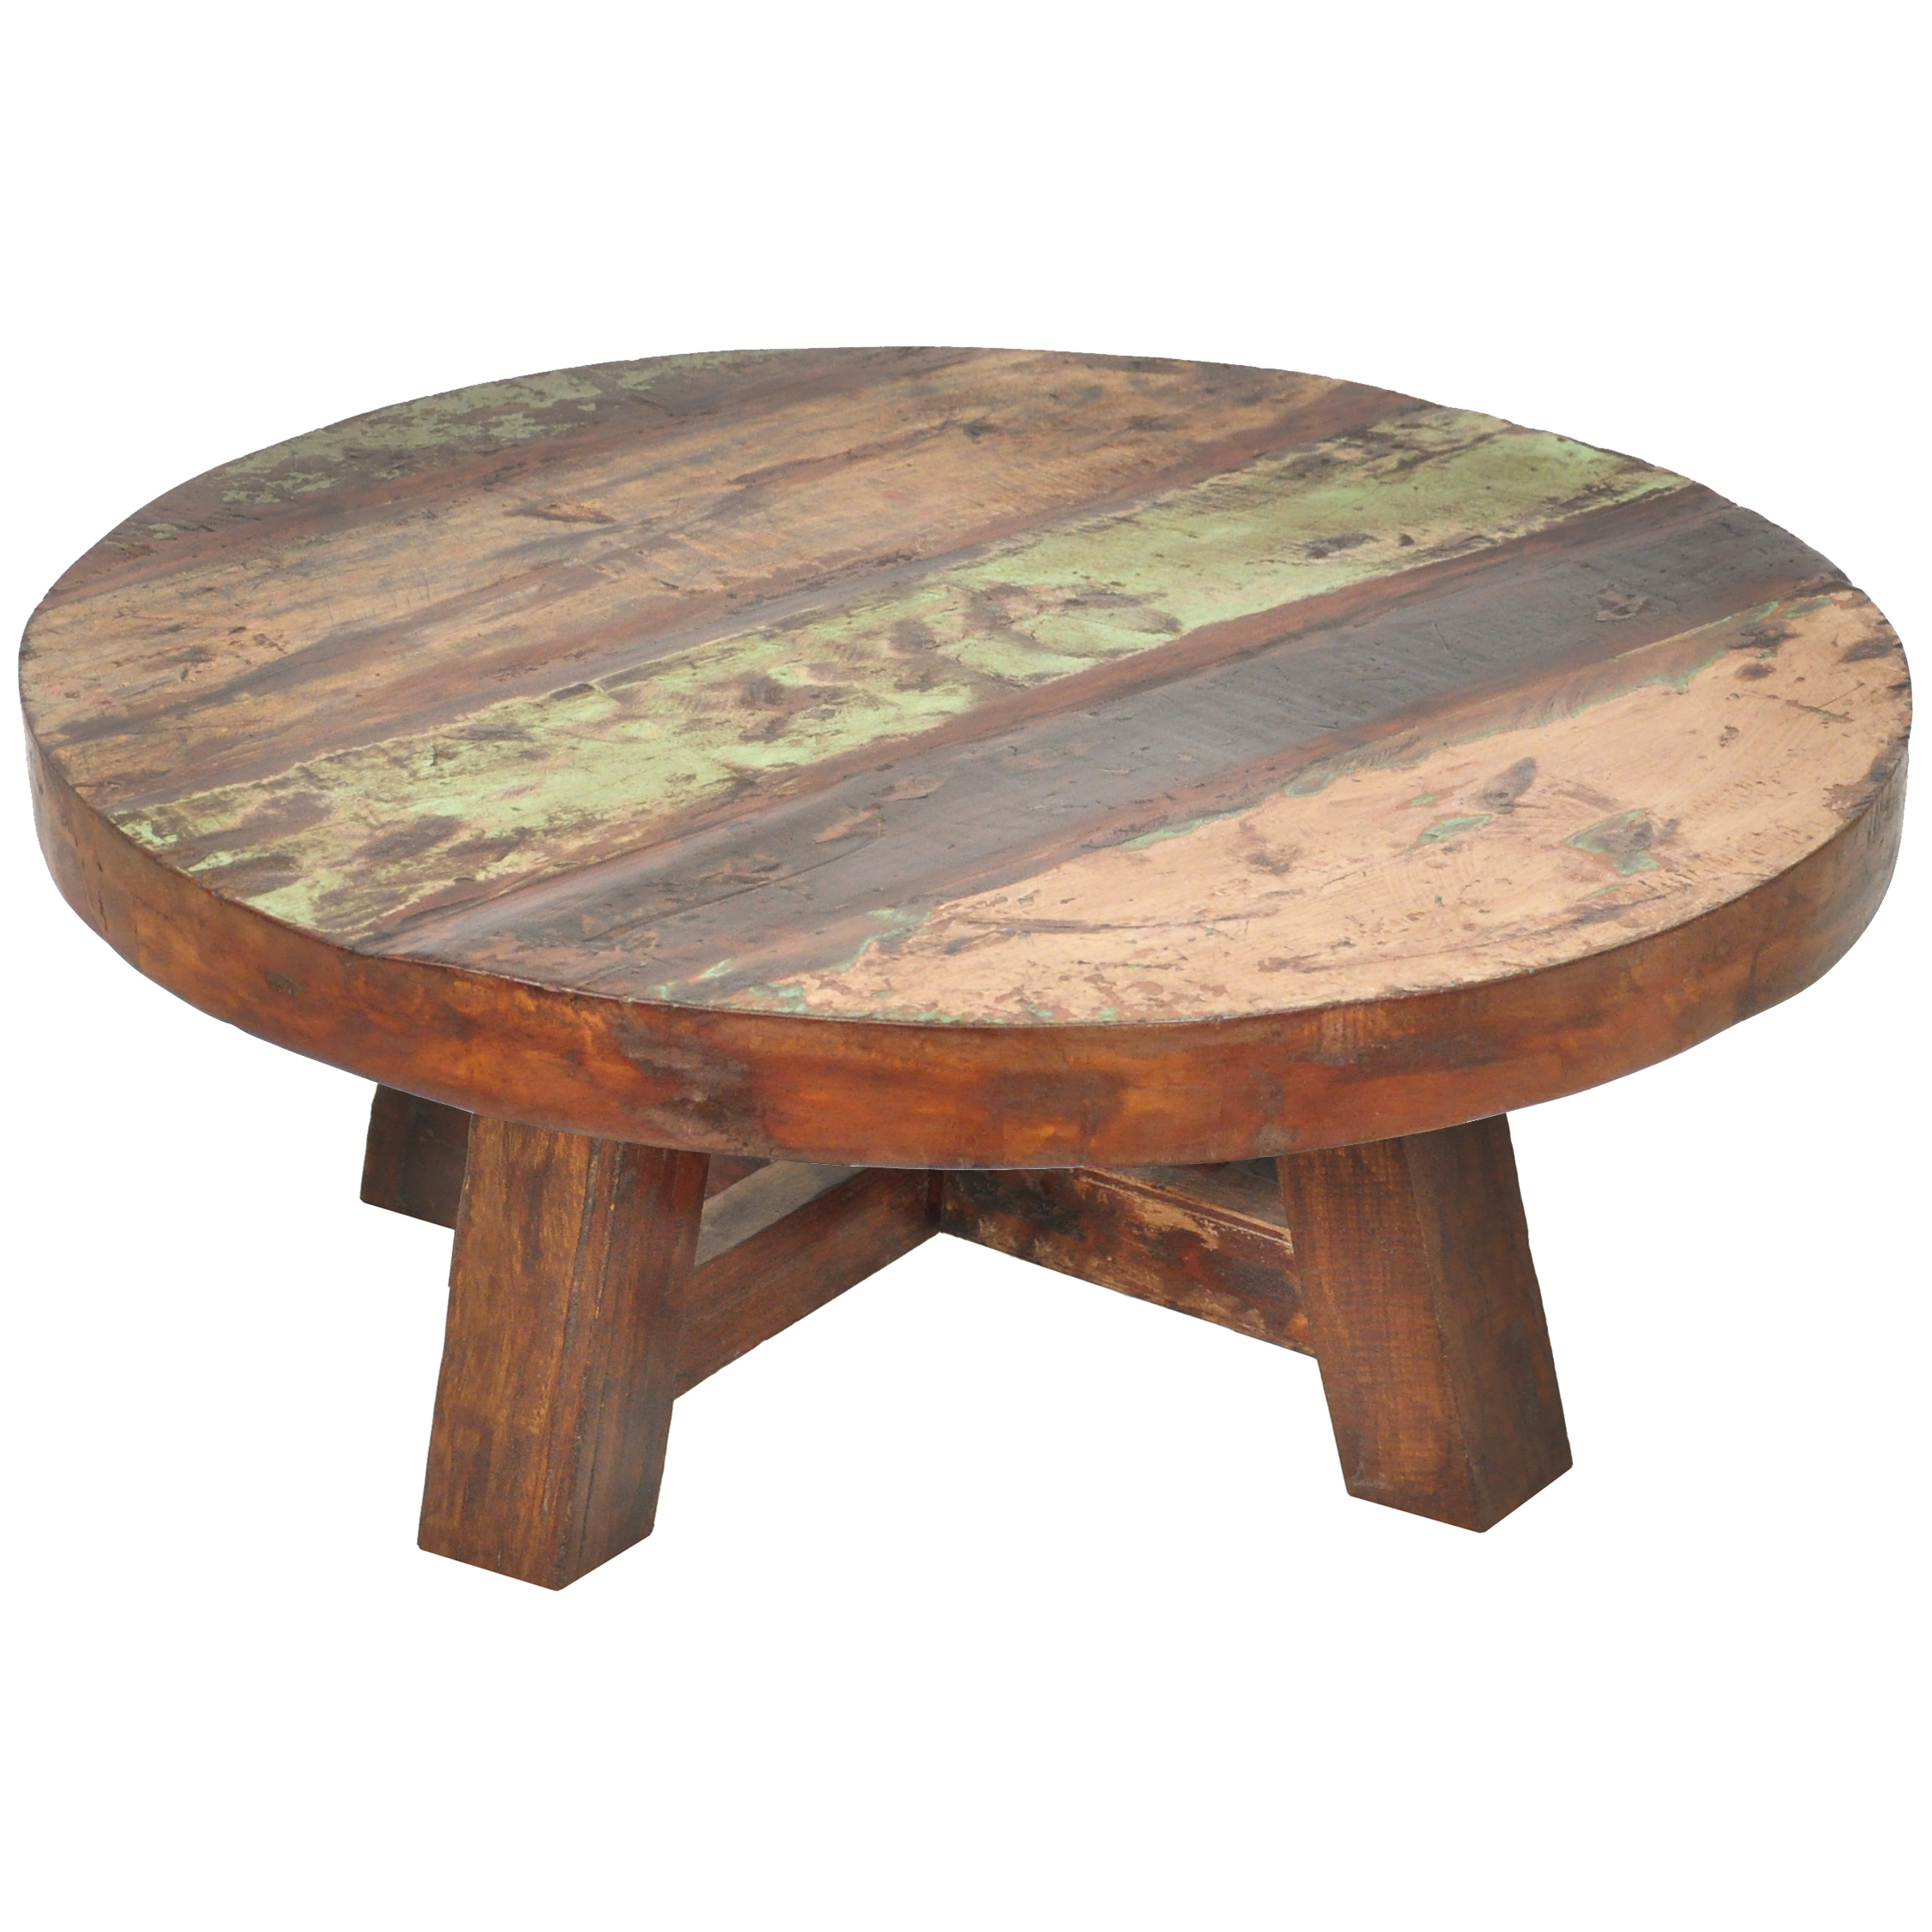 small round metal coffee table regarding outdoor wood furniture susbg info with side calgary lucite entry wrought iron lamps backyard chairs screw wooden legs threshold bars for